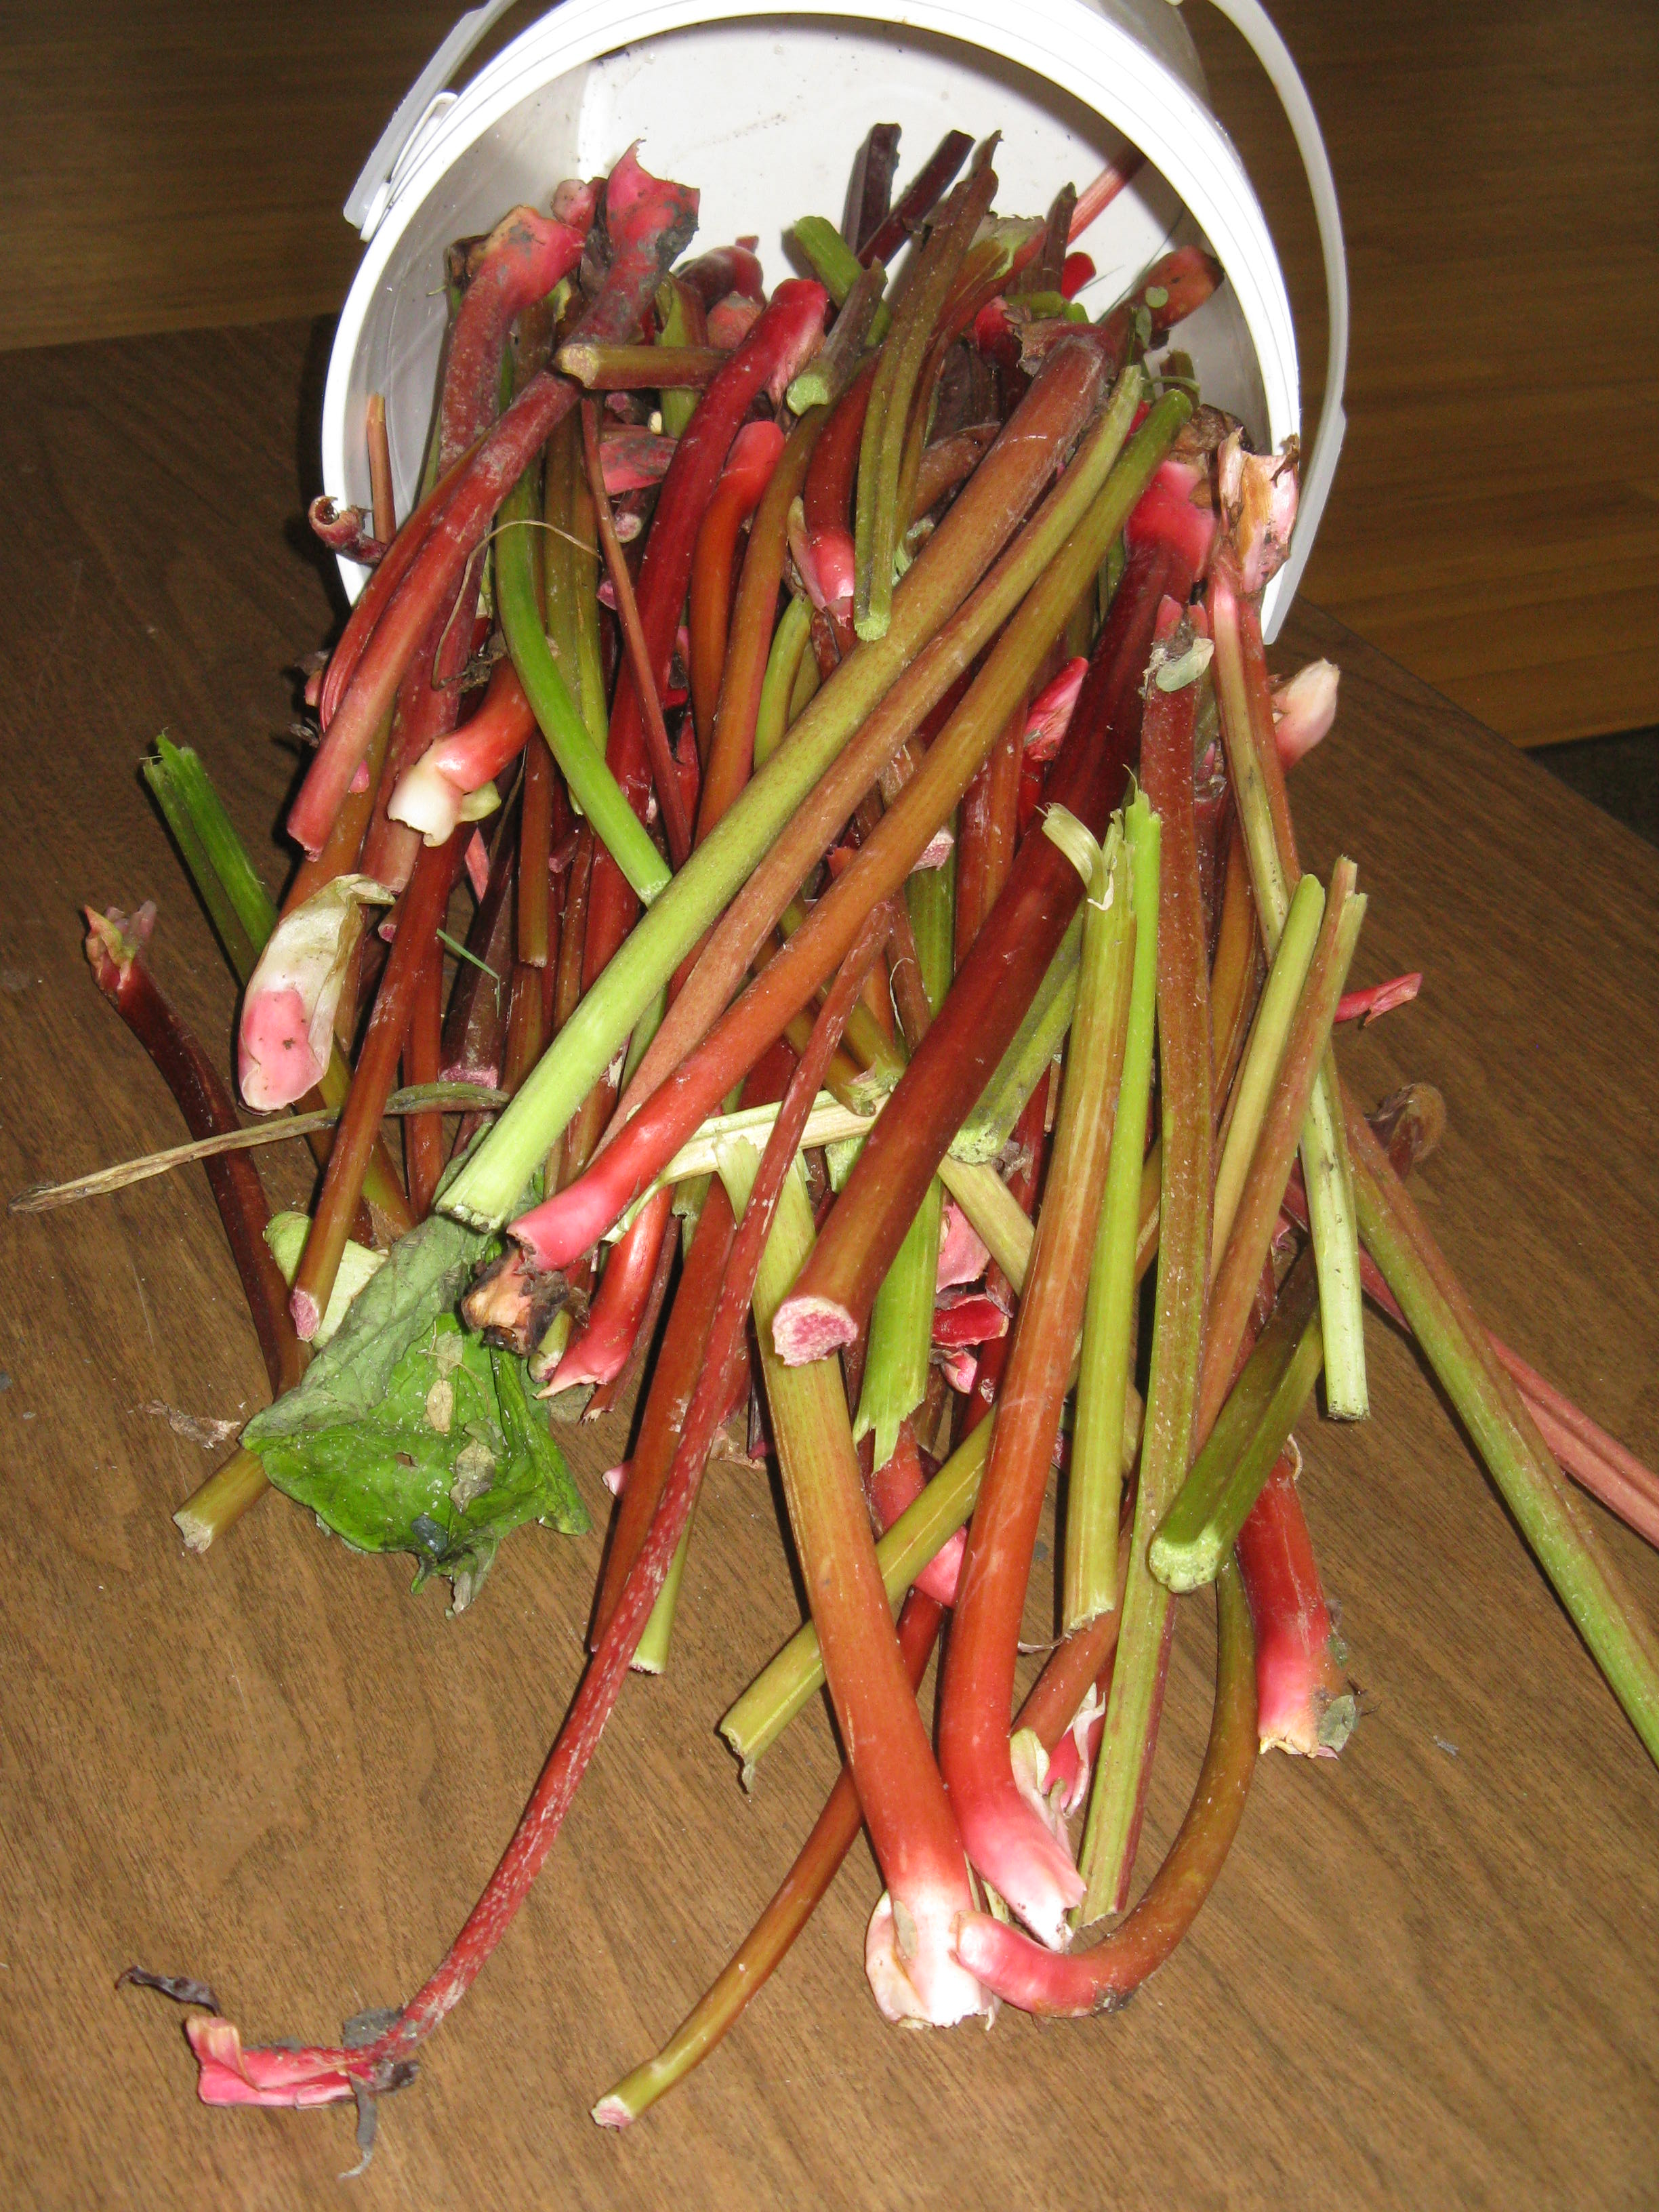 Fresh Rhubarb ready for a wash and trim